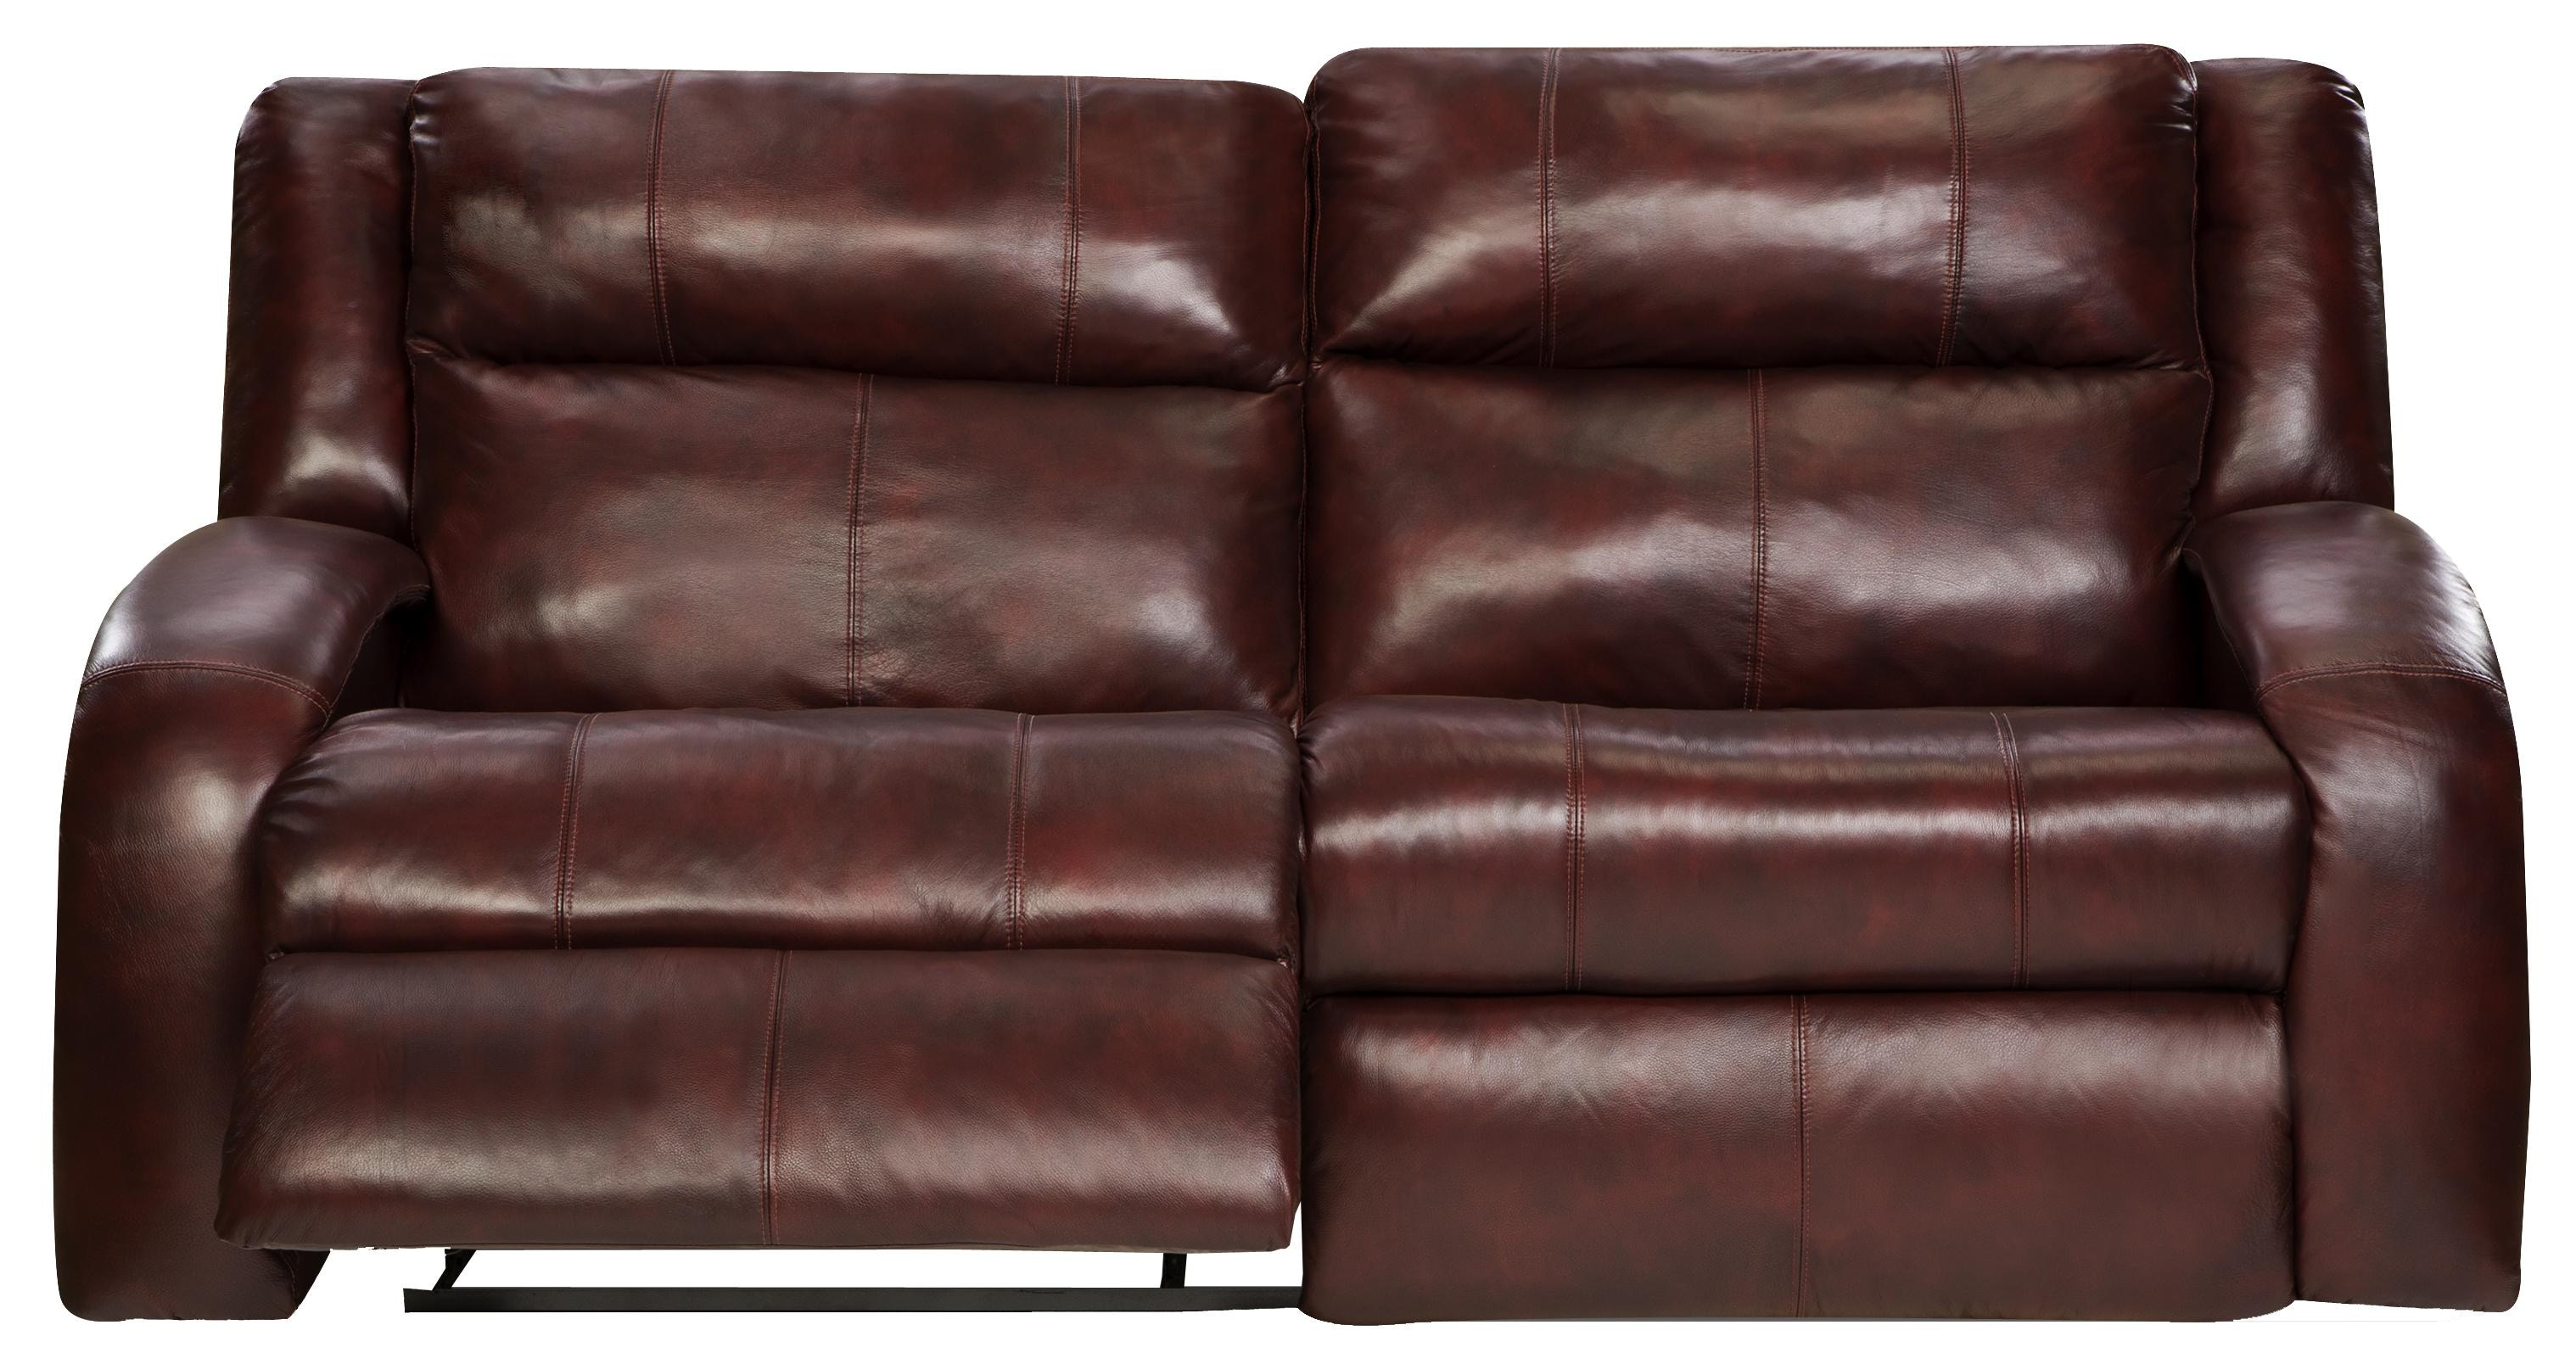 Southern Motion Living Room Reclining Sofa 550 30 Bacons